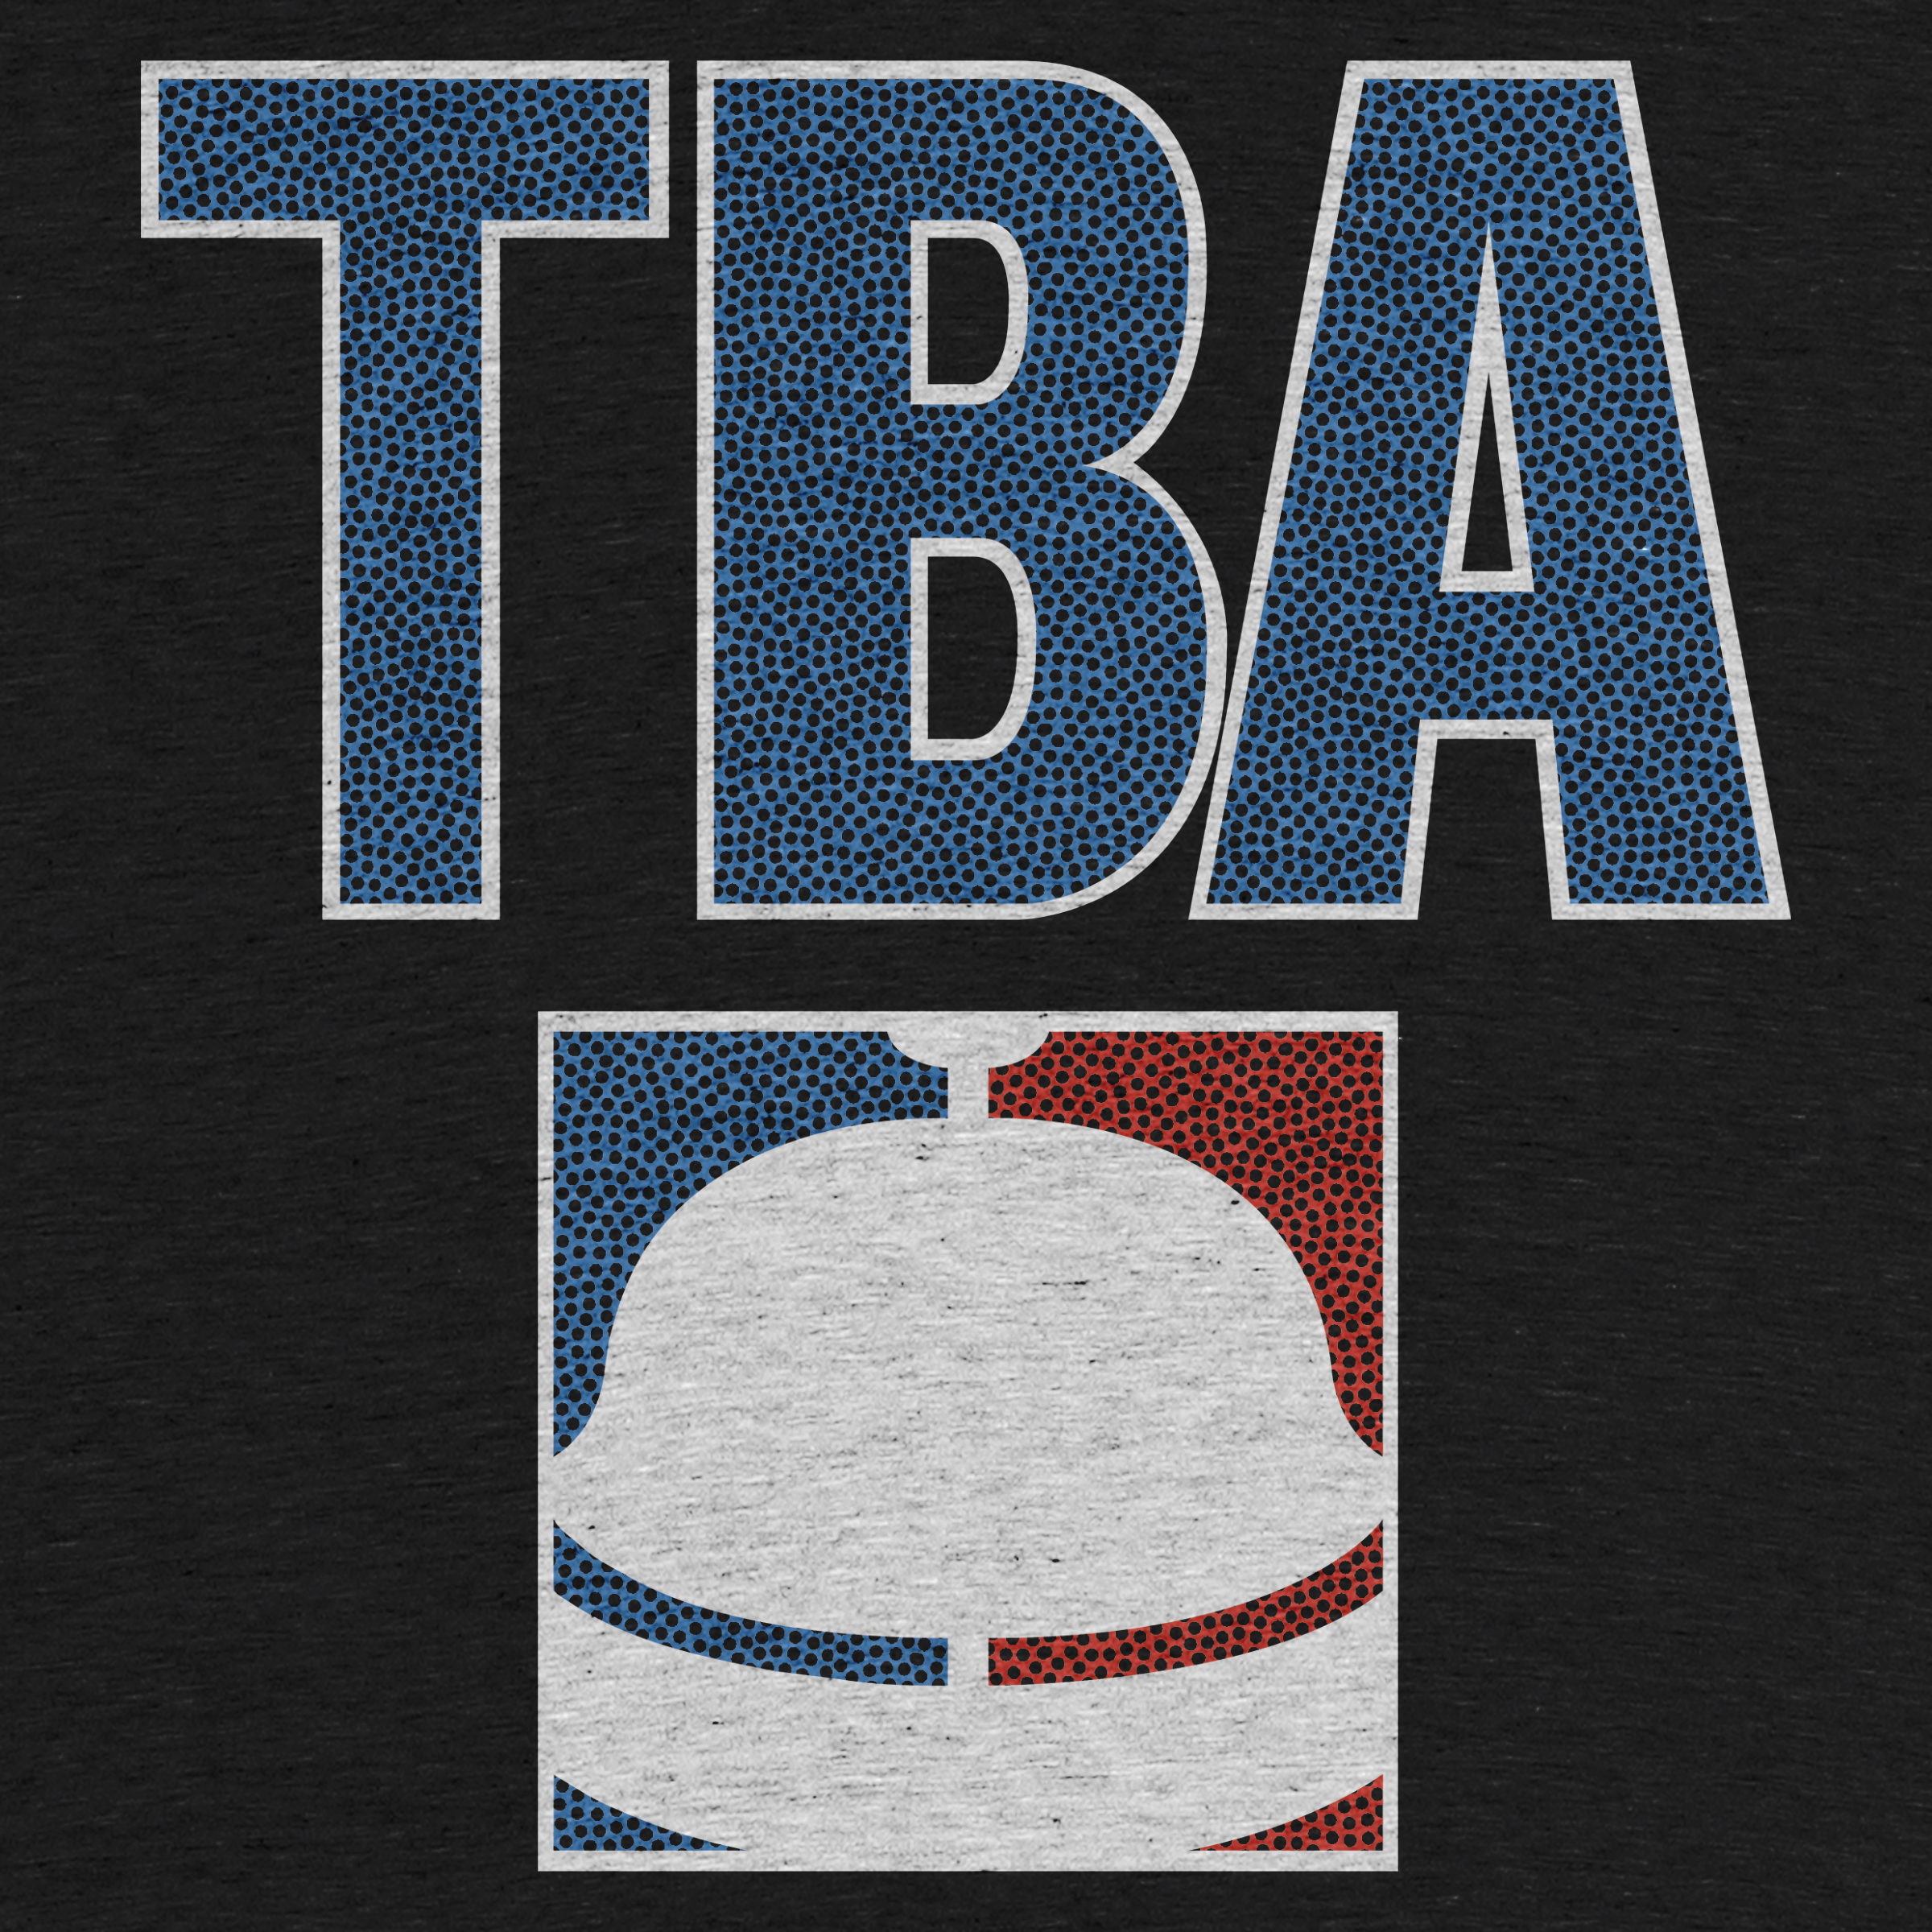 TBA Podcast